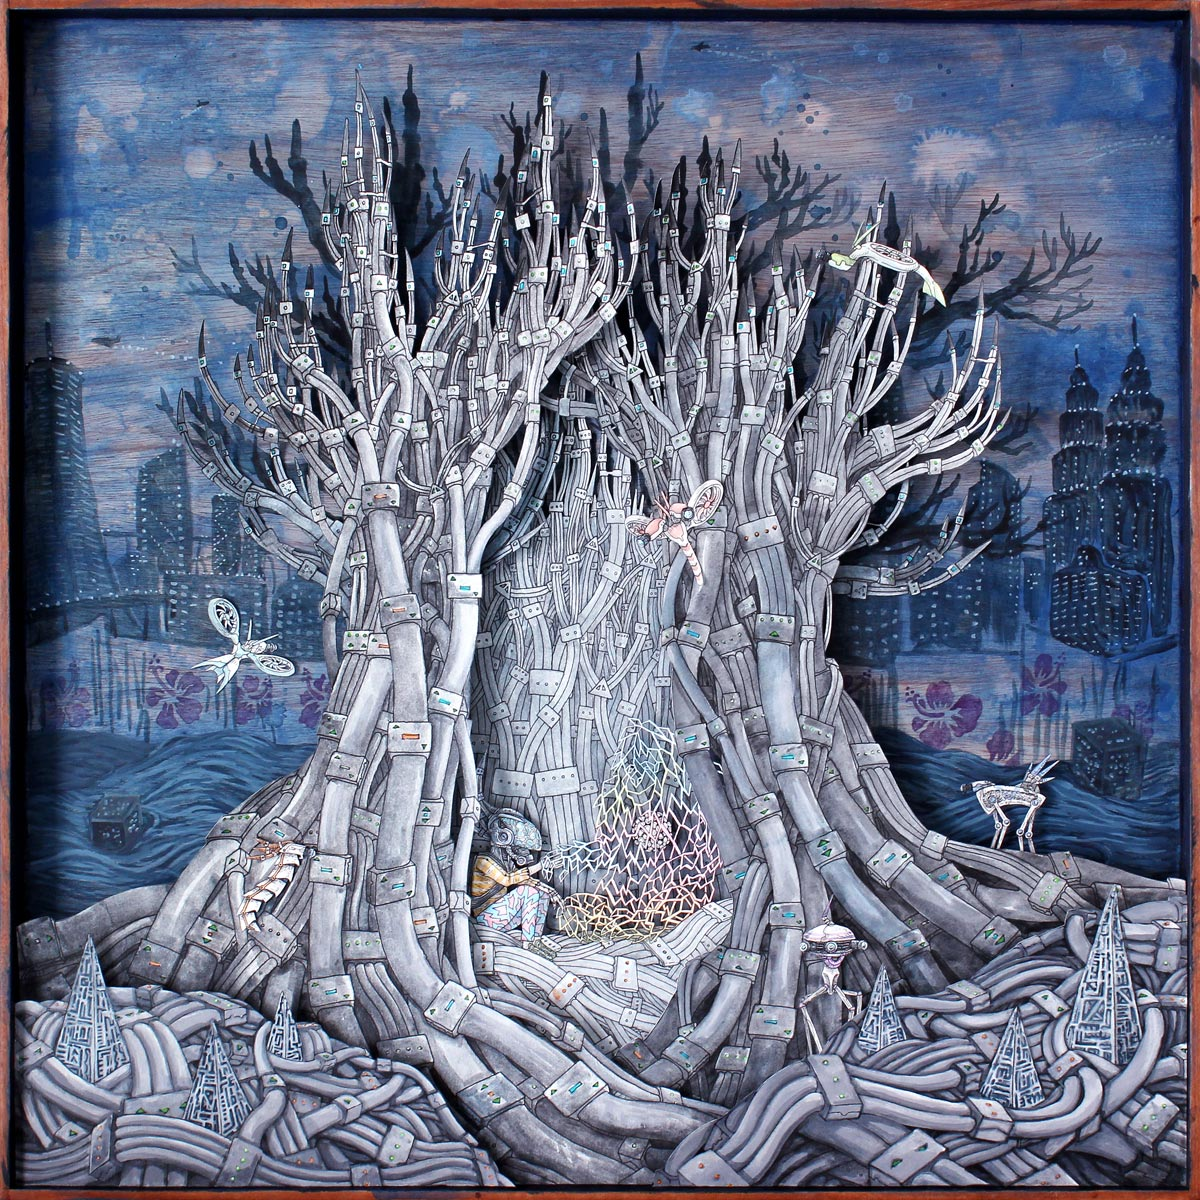 Tree of (Future) Life , Faber-Castell PITT pen and watercolour on layered paper cutout & acrylic on wood, 60x60cm, 2057: Malaysia in the Future exhibition, 2016, private collection